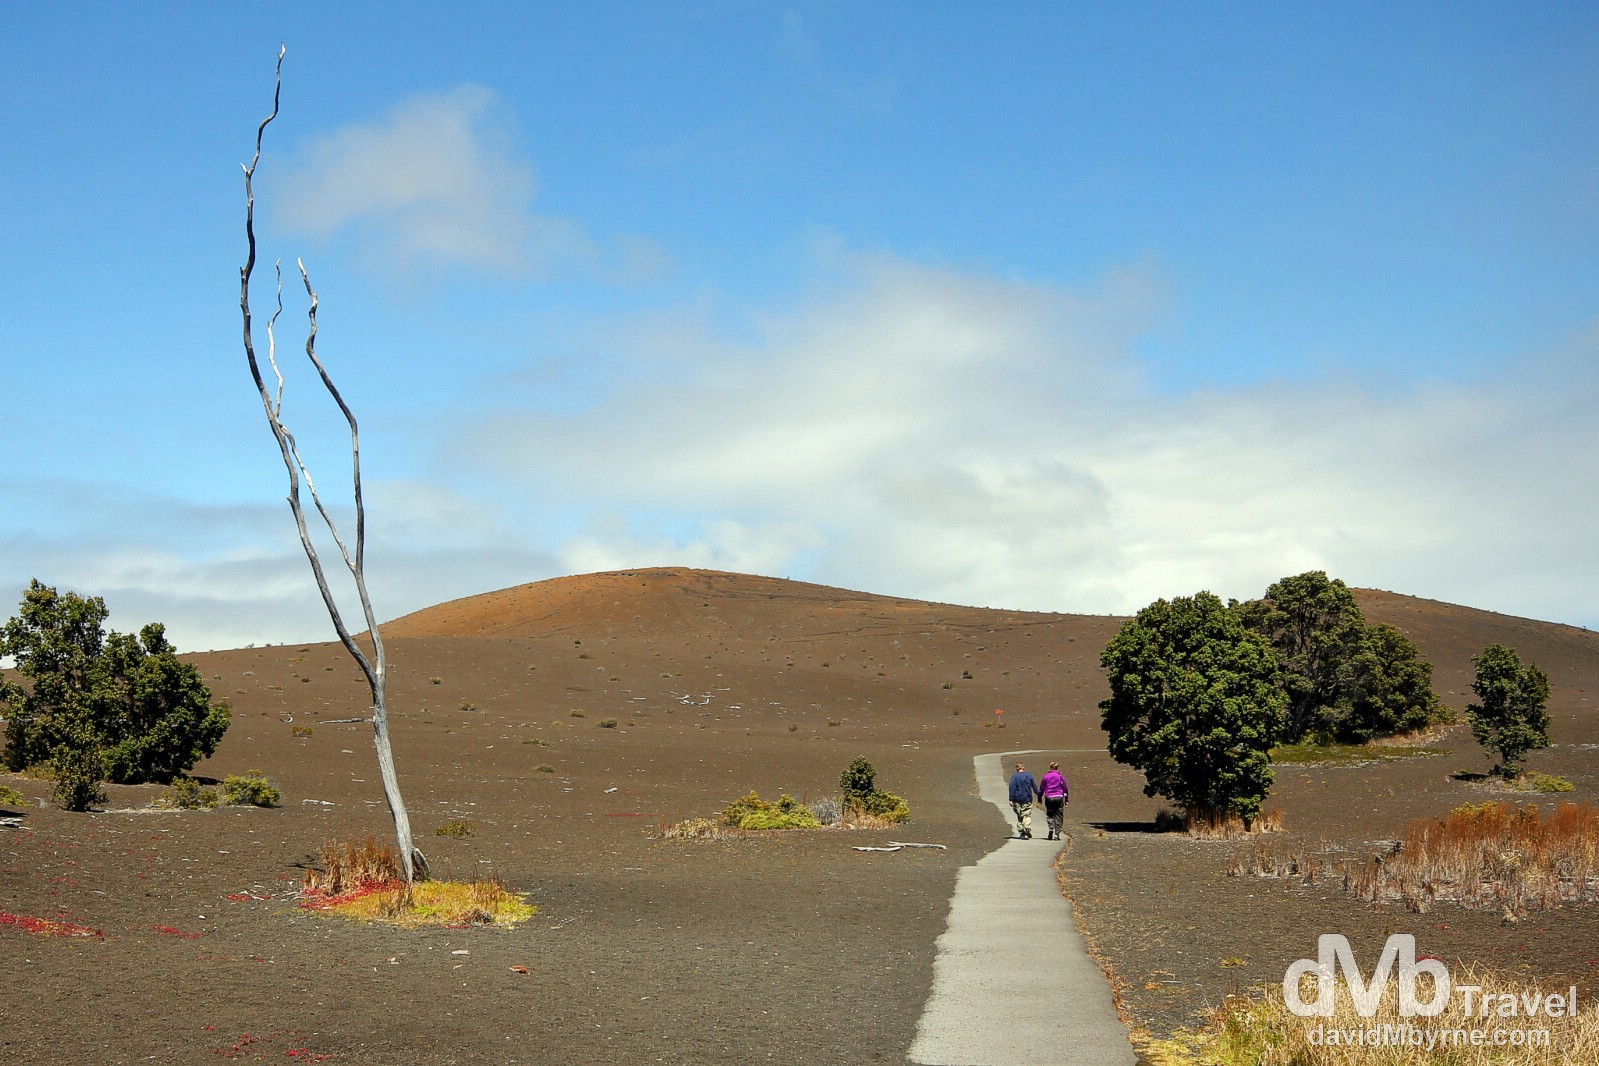 Walking the Desolation Trail in Hawaii Volcanoes National Park, the Big Island of Hawai'i, USA. March 2nd 2013.